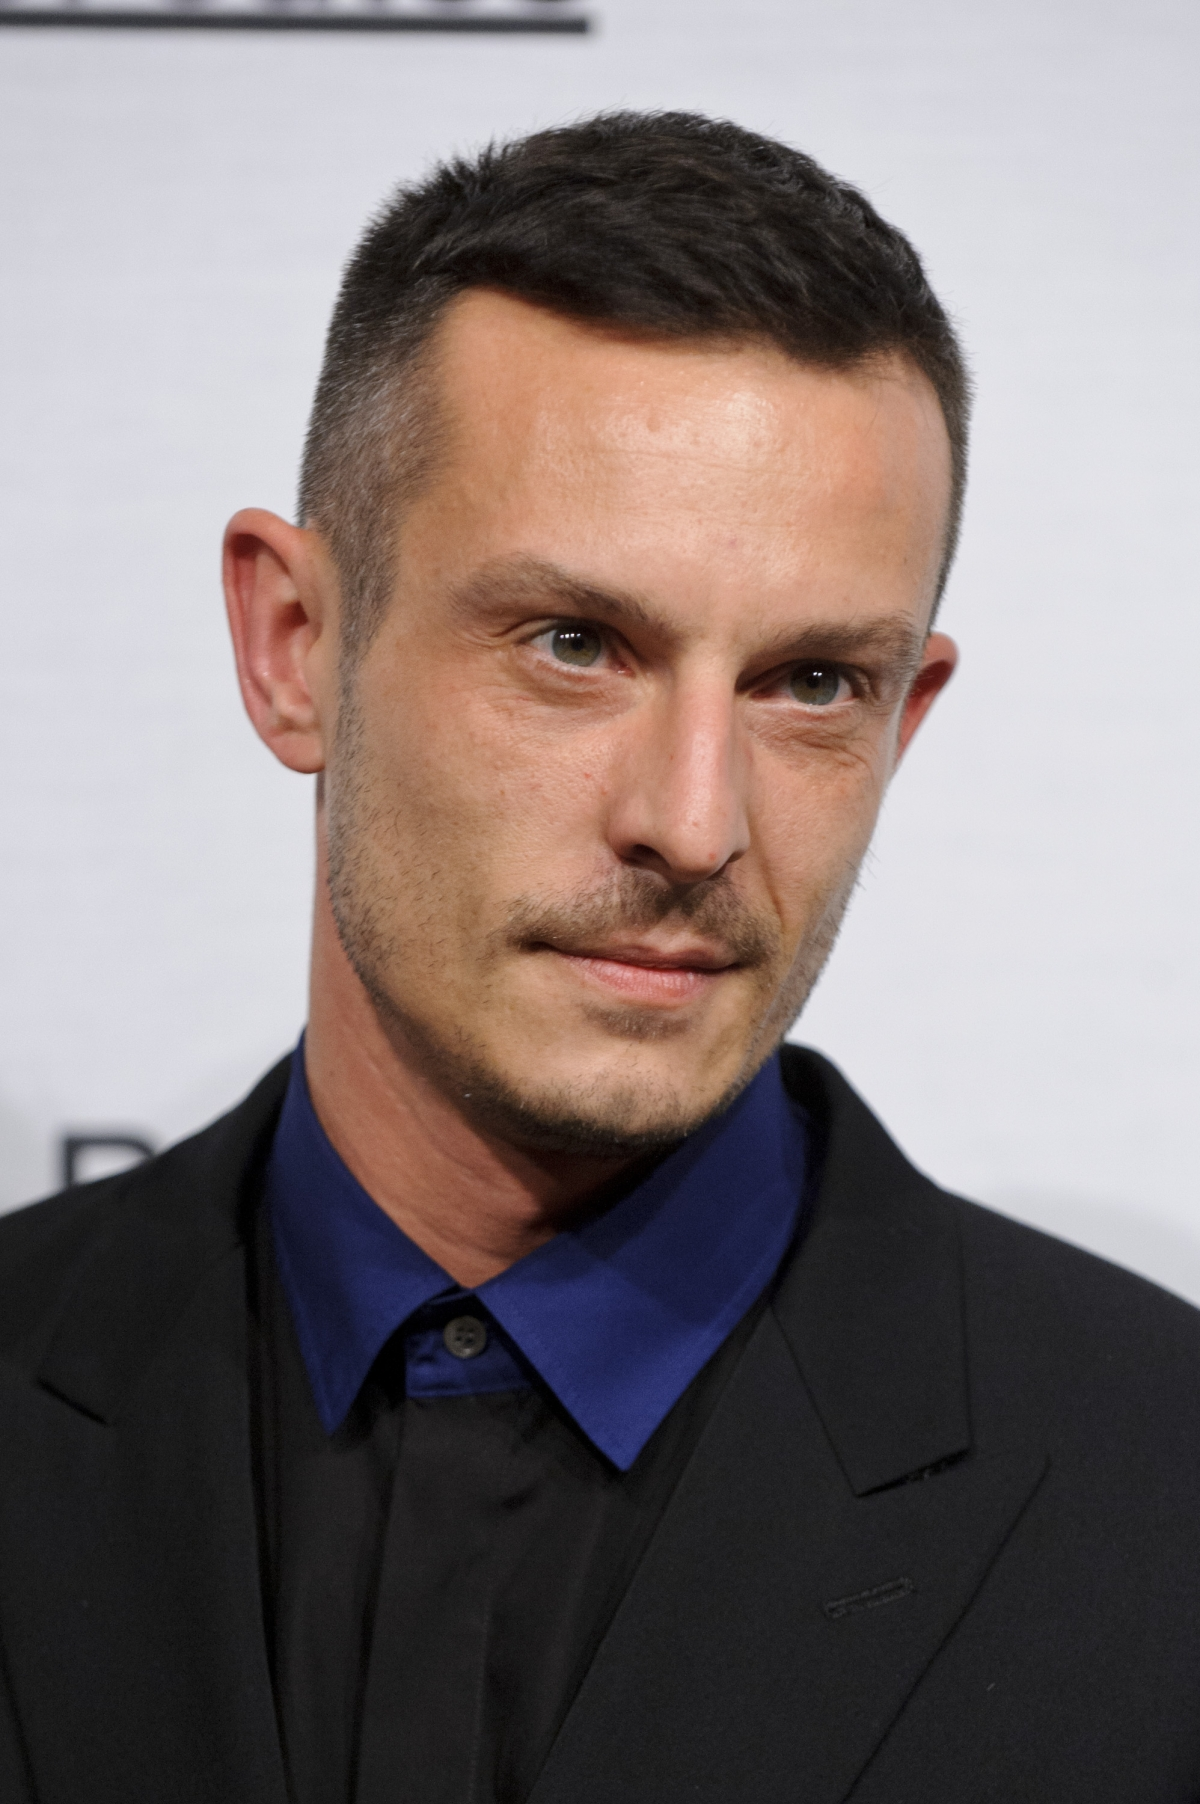 jonathan saunders moves to DVF